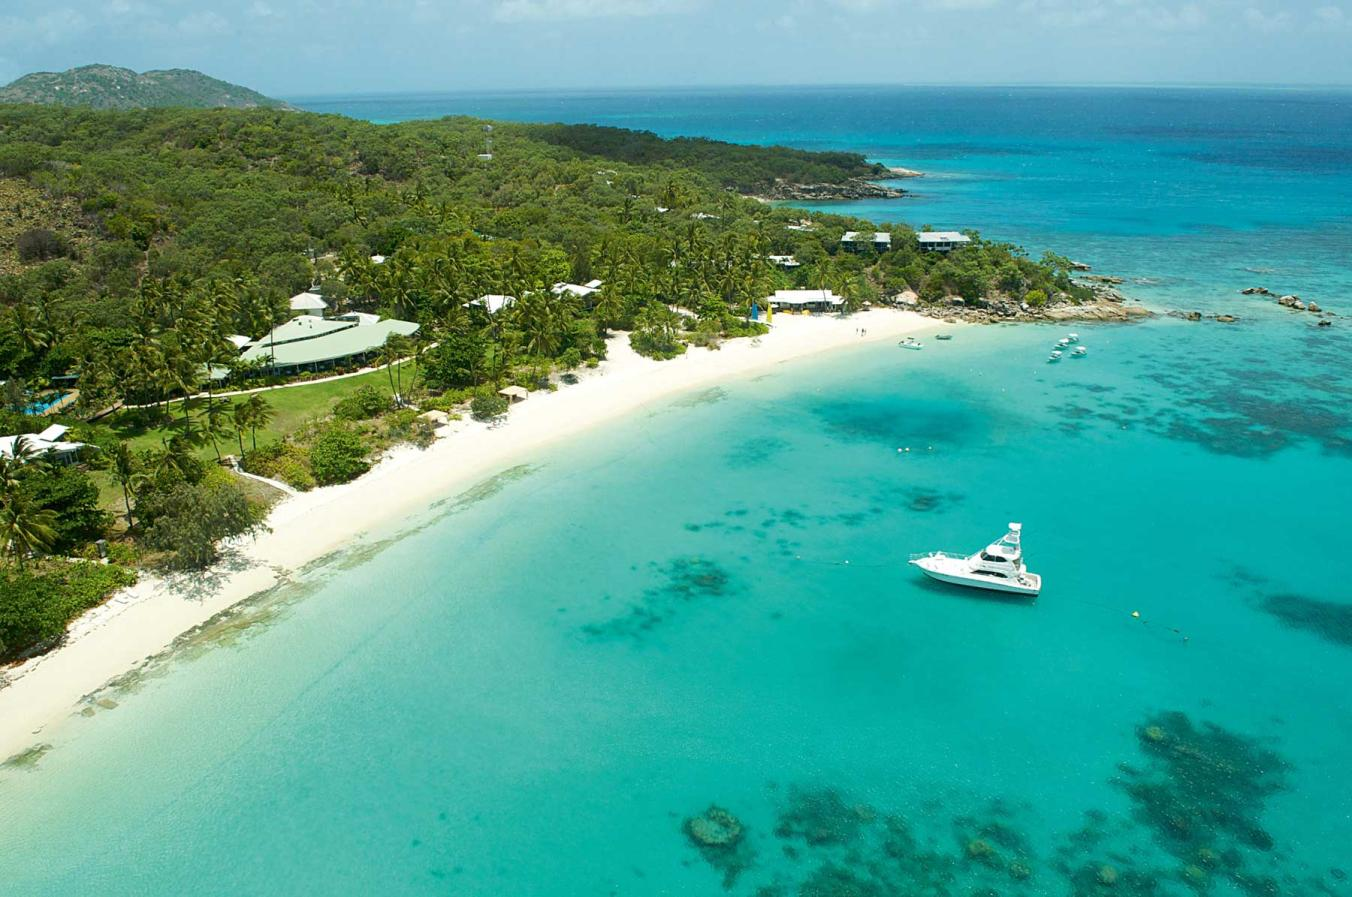 Lizard Island resort in the Great Barrier Reef, is the only development on the island, accessible exclusively by plane and filling only 40 rooms at a time (photo by National Geographic Travel).